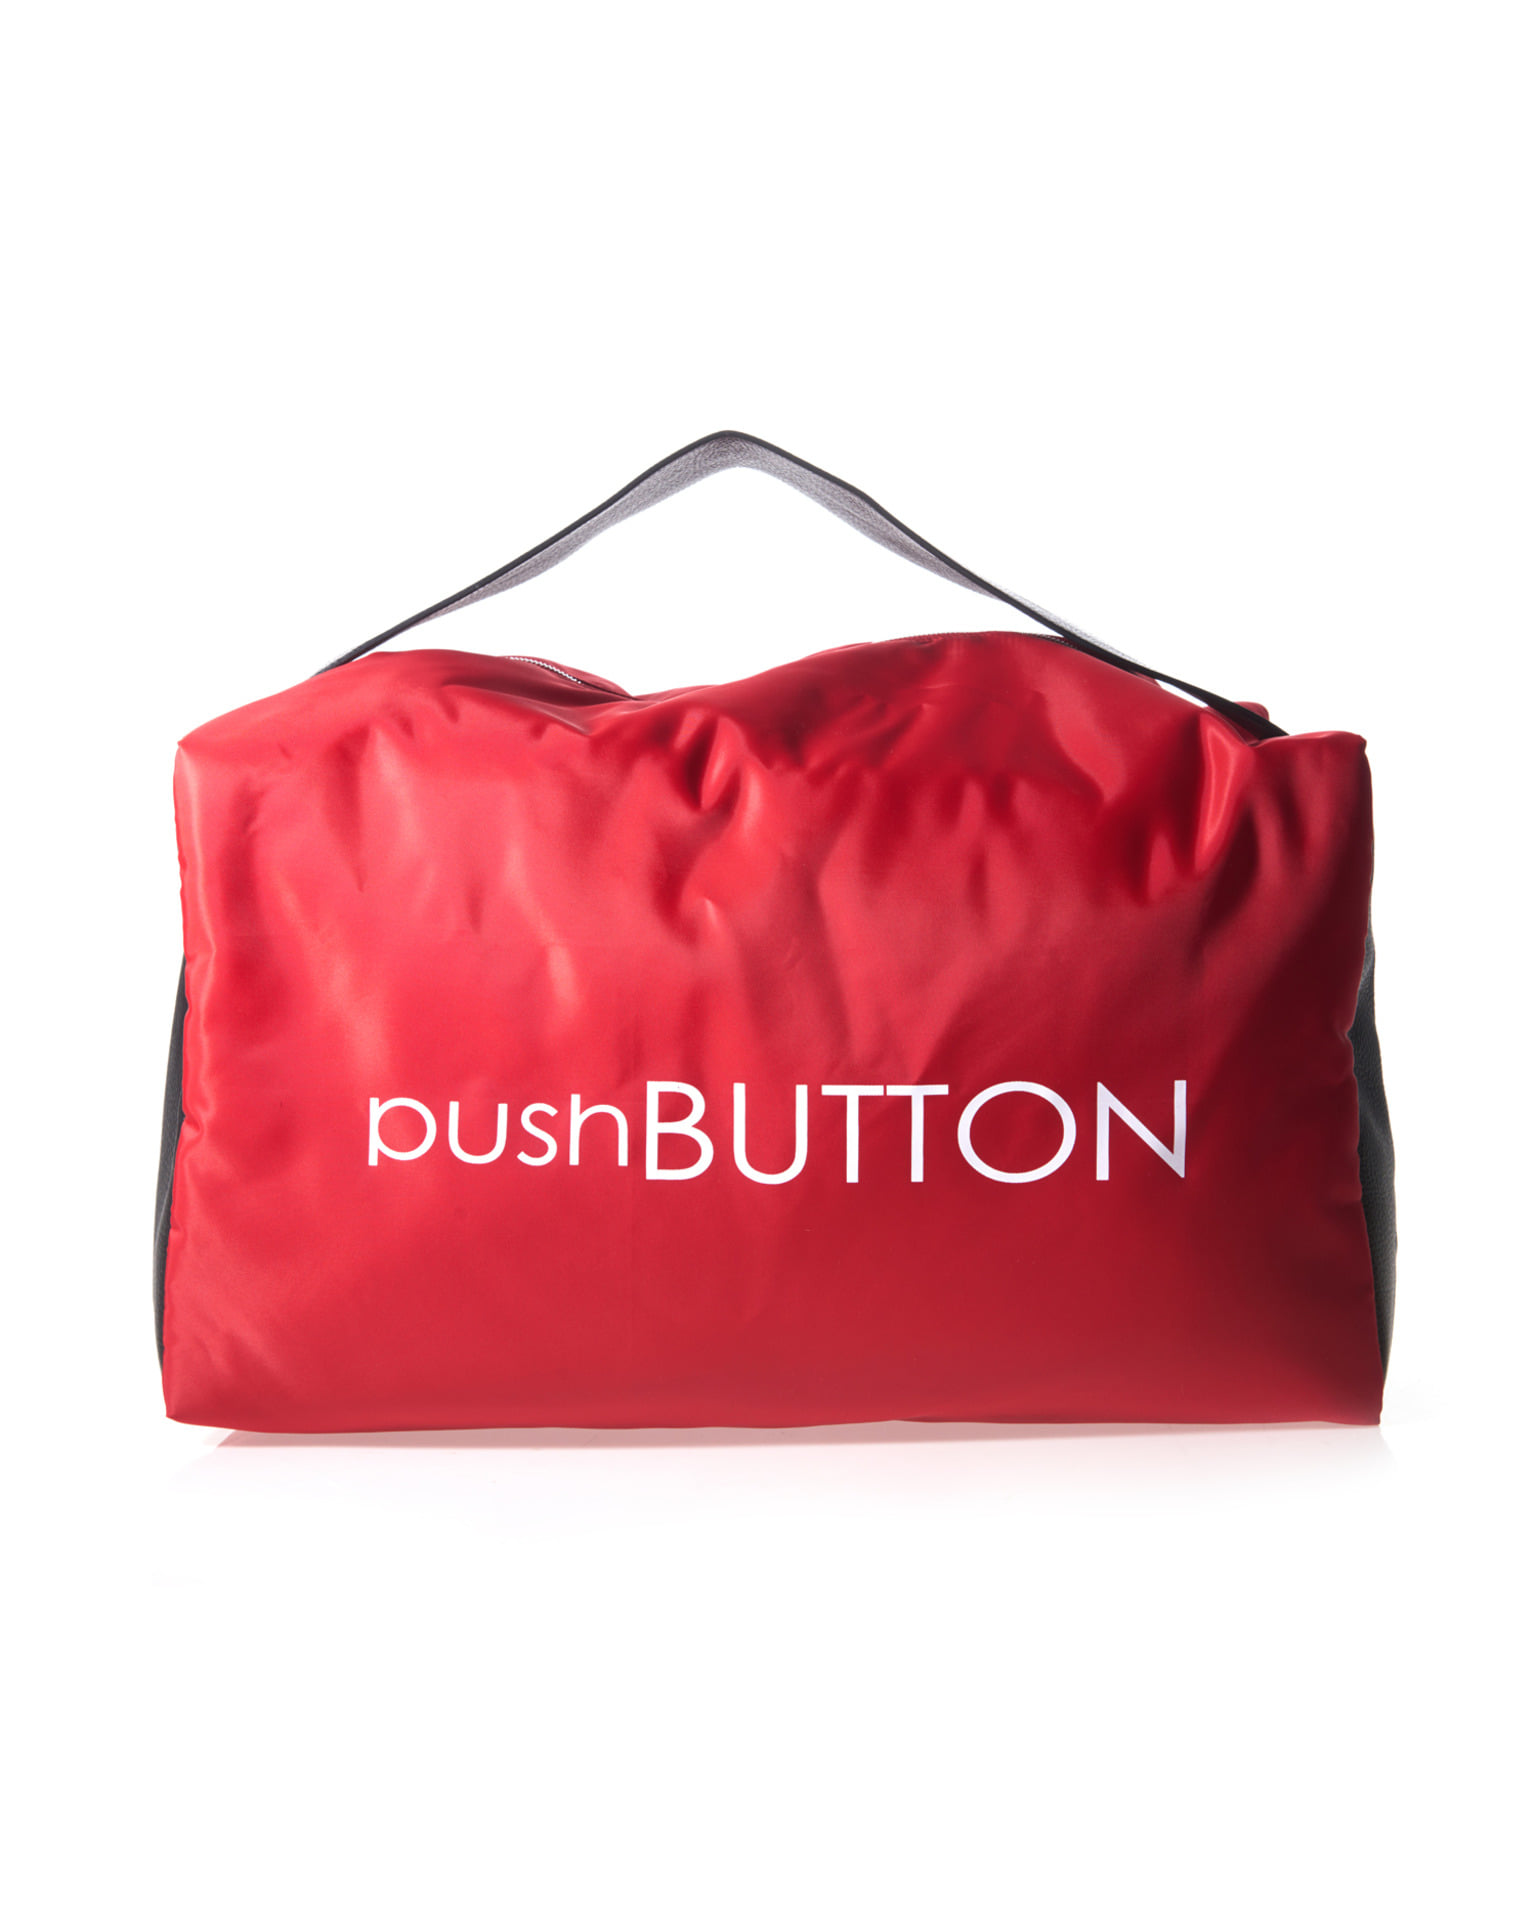 BIG PUSHBUTTON BAG